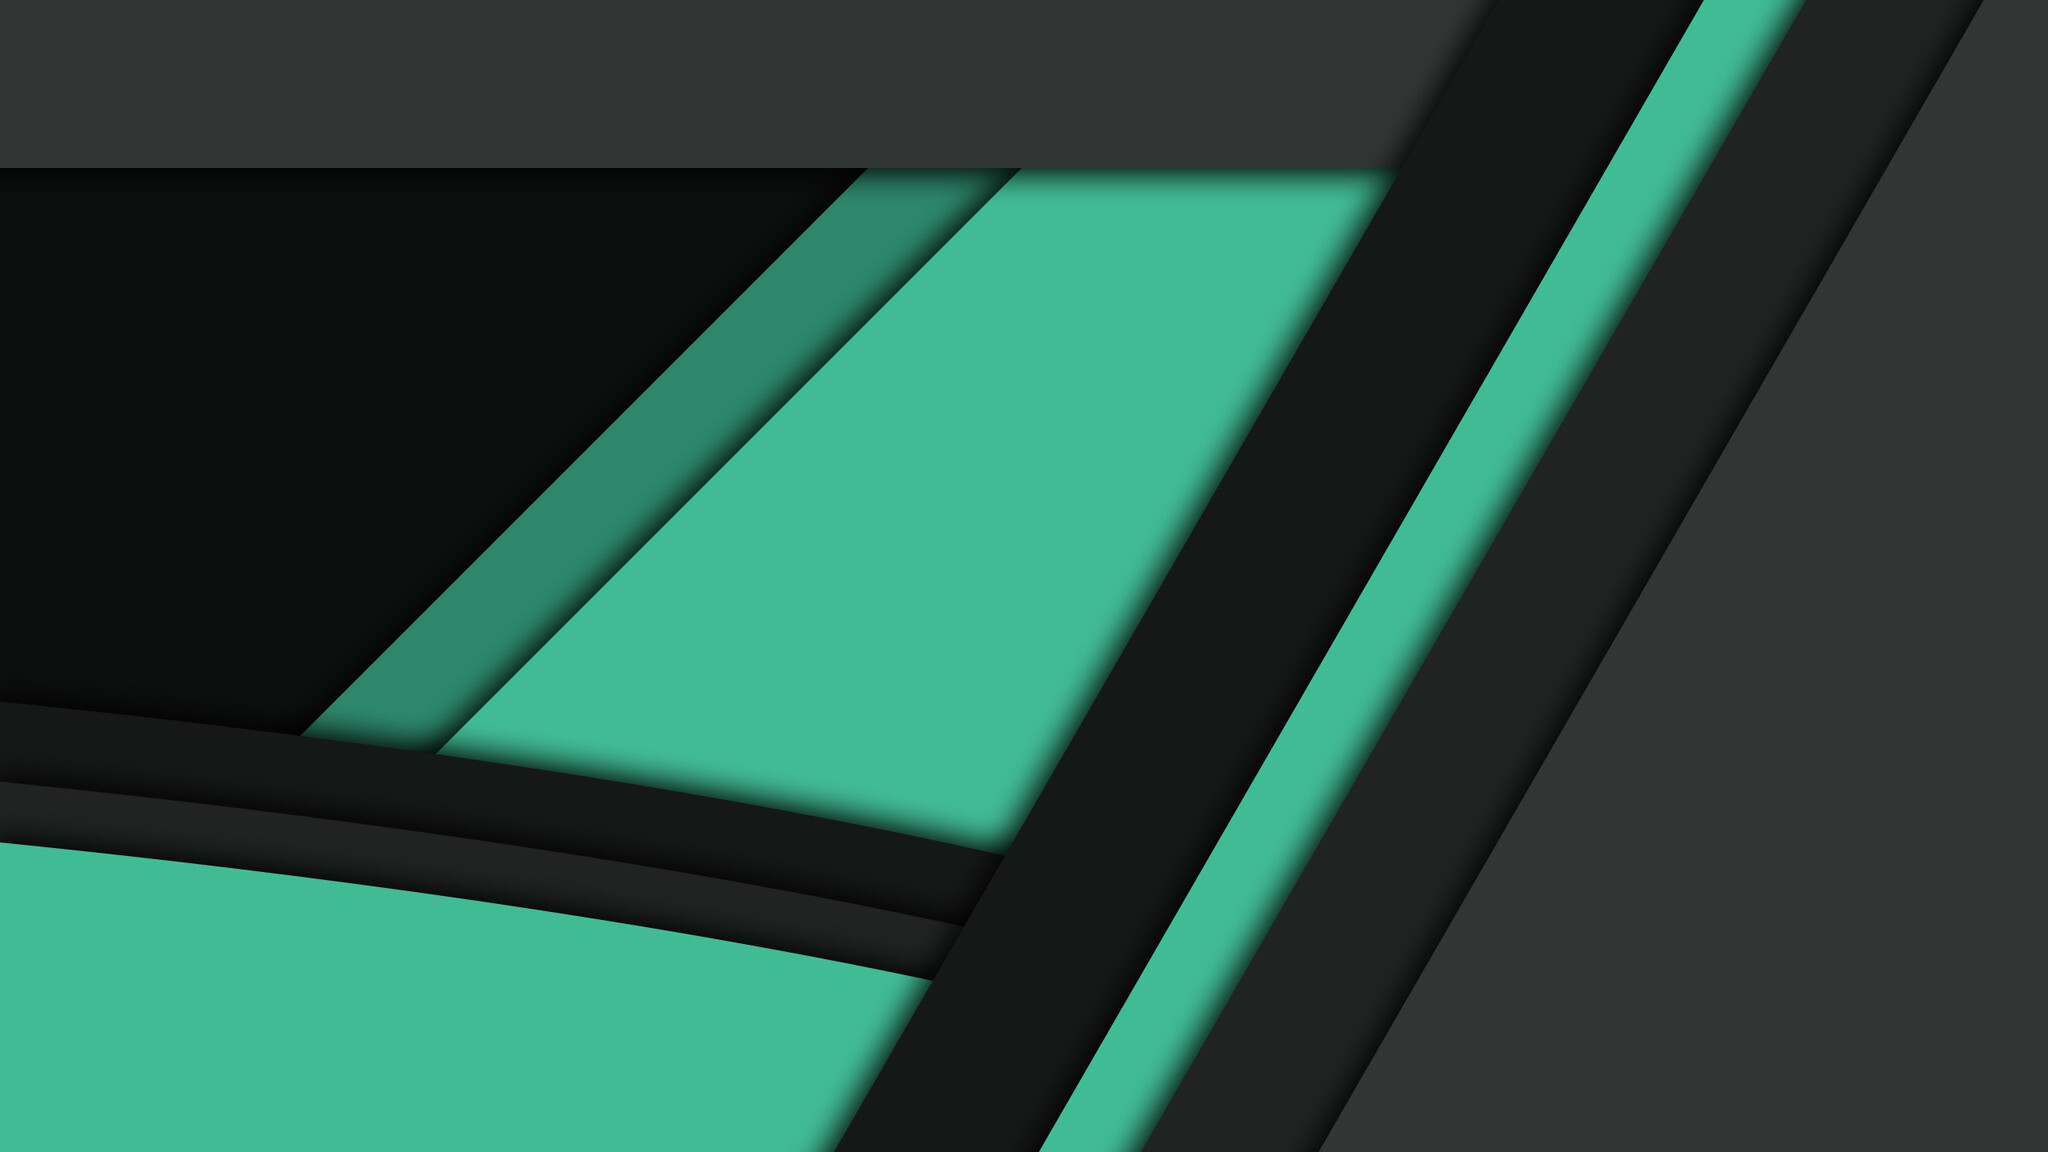 2048x1152 Black Green Material Design 2048x1152 Resolution ...